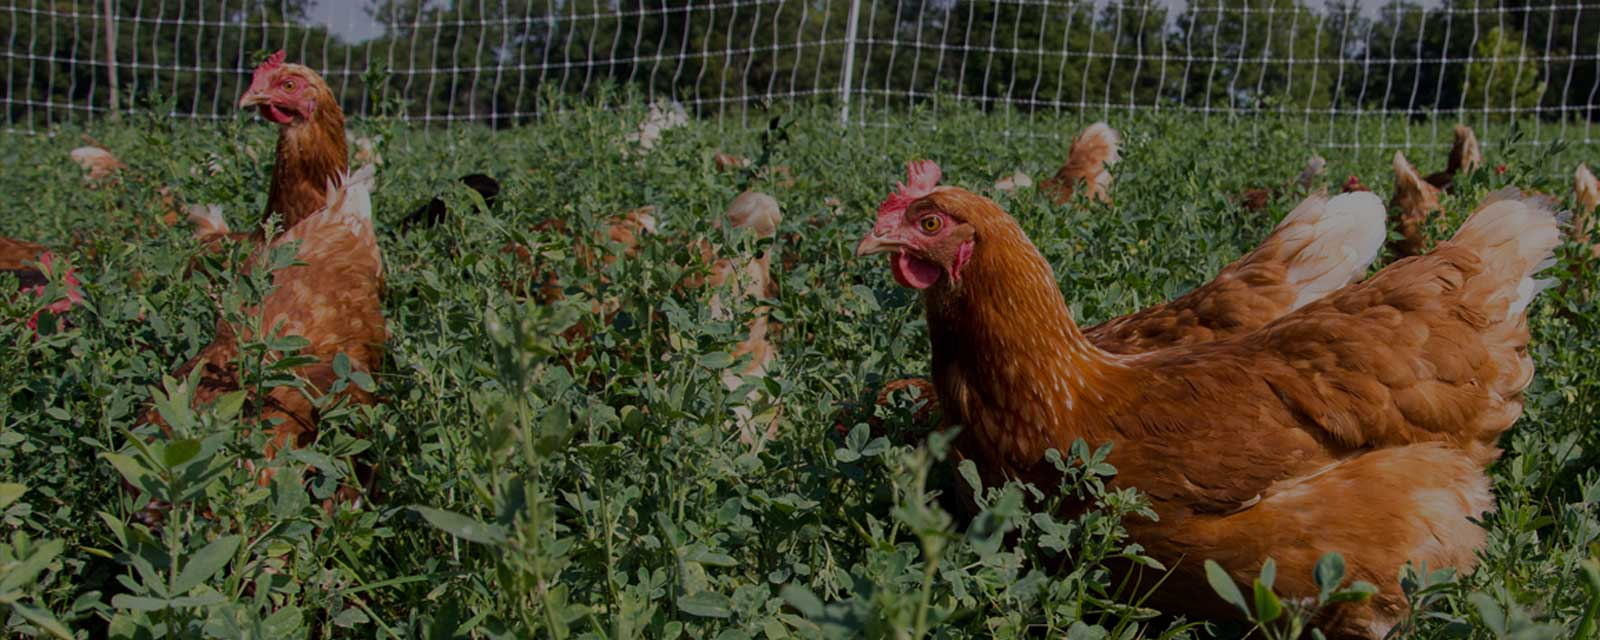 Rosehill Poultry | Contact